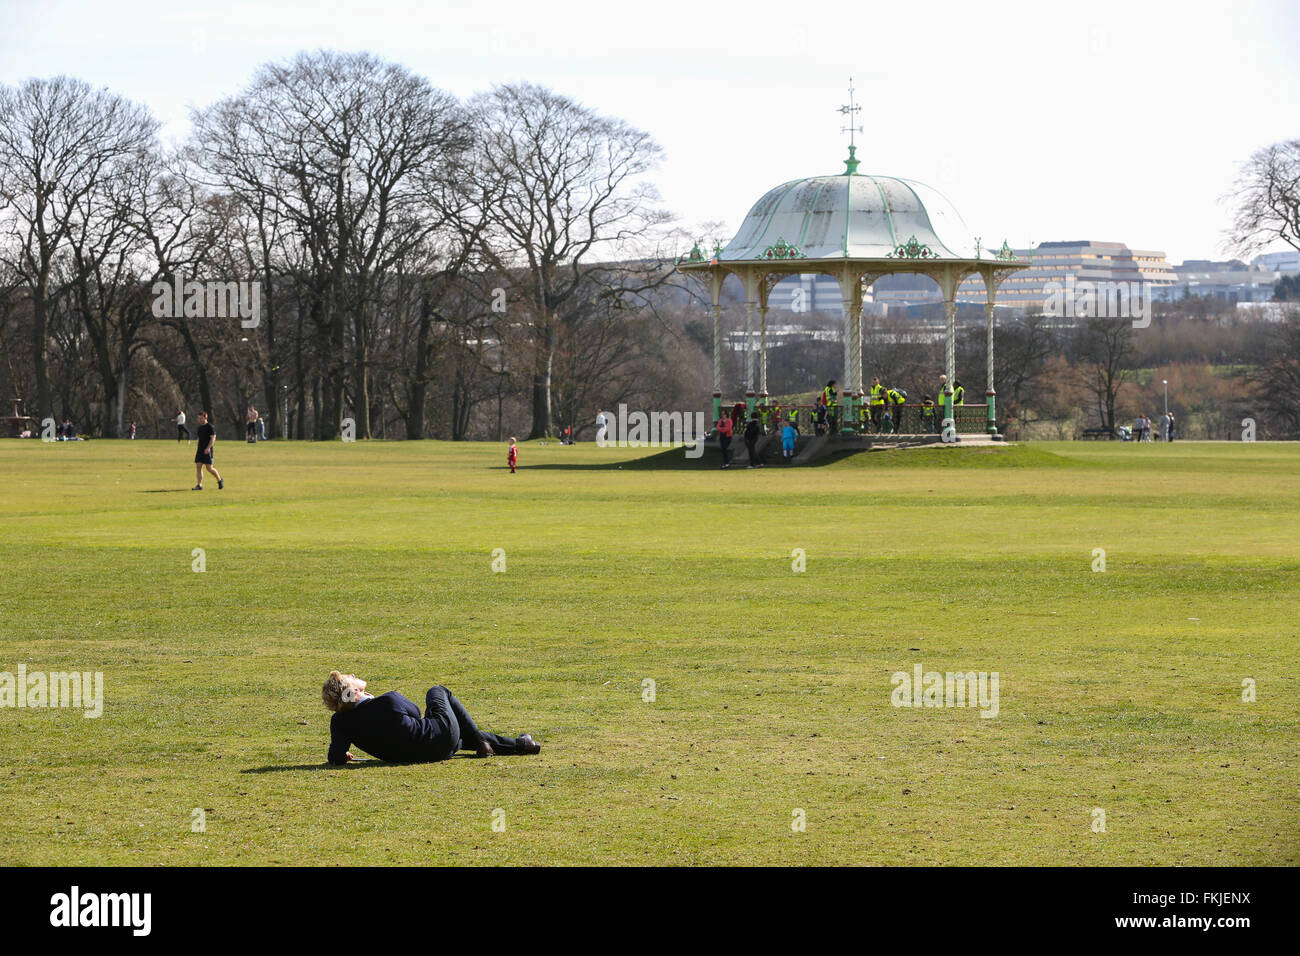 People enjoying the sun in Duthie Park, Aberdeen, Scotland, UK, with the bandstand in the background - Stock Image